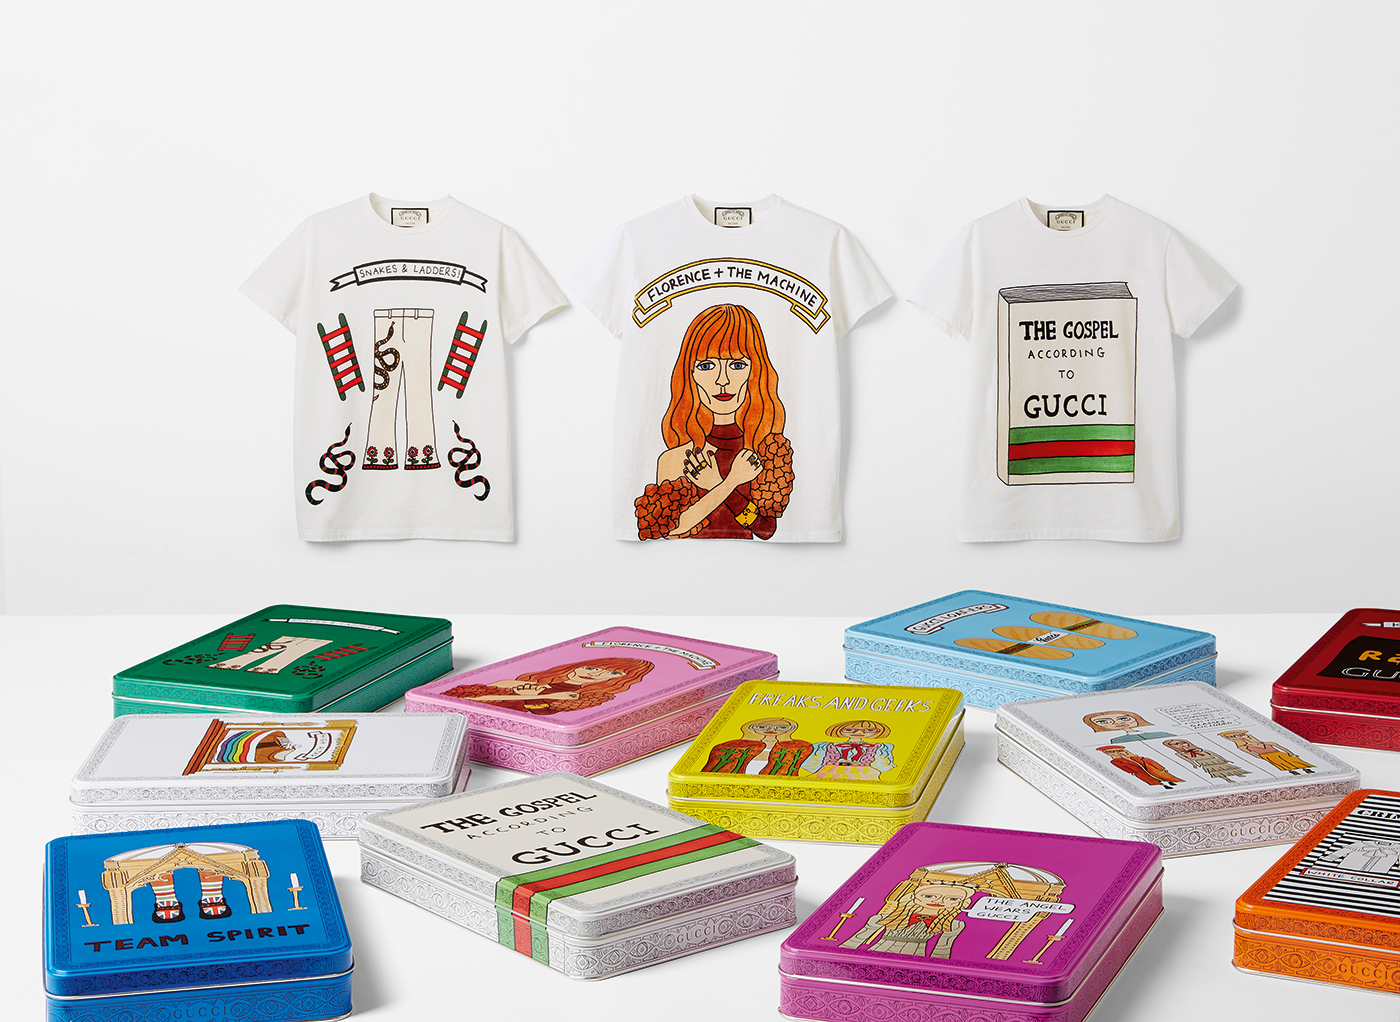 The Angelica Hicks for Gucci t-shirt collection